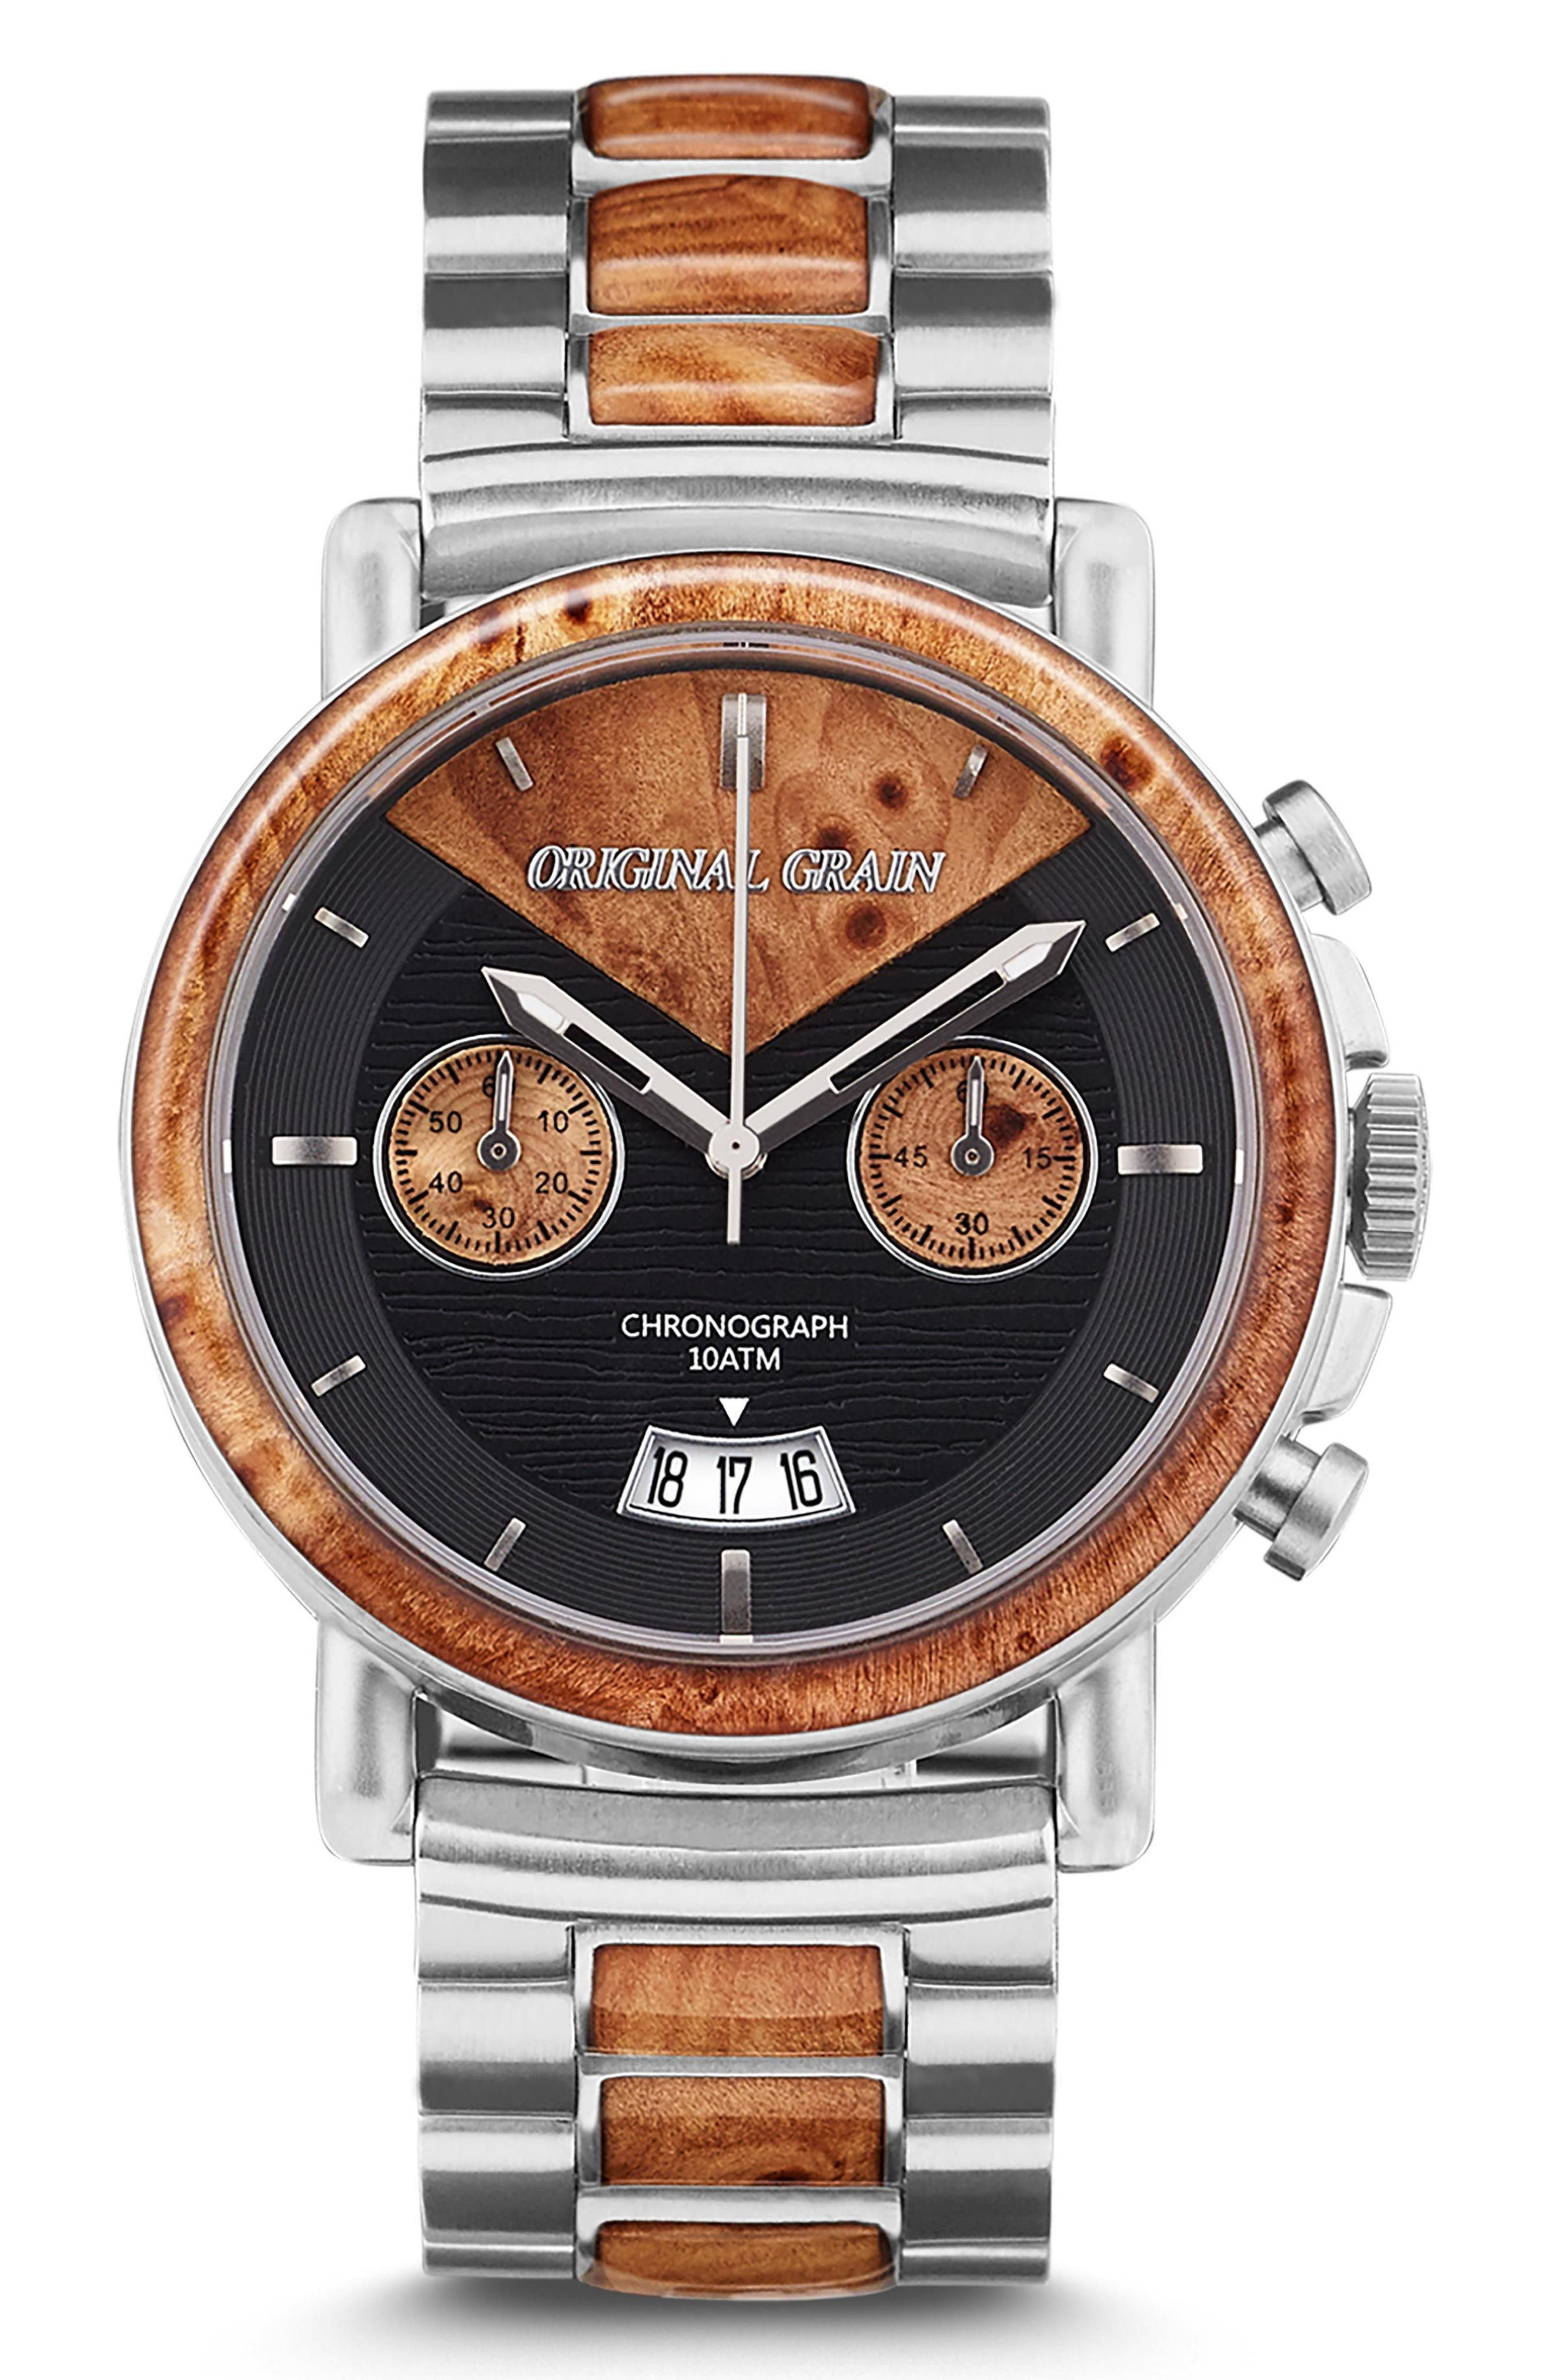 Main Image - Original Grain Alterra Chronograph Bracelet Watch, 44mm